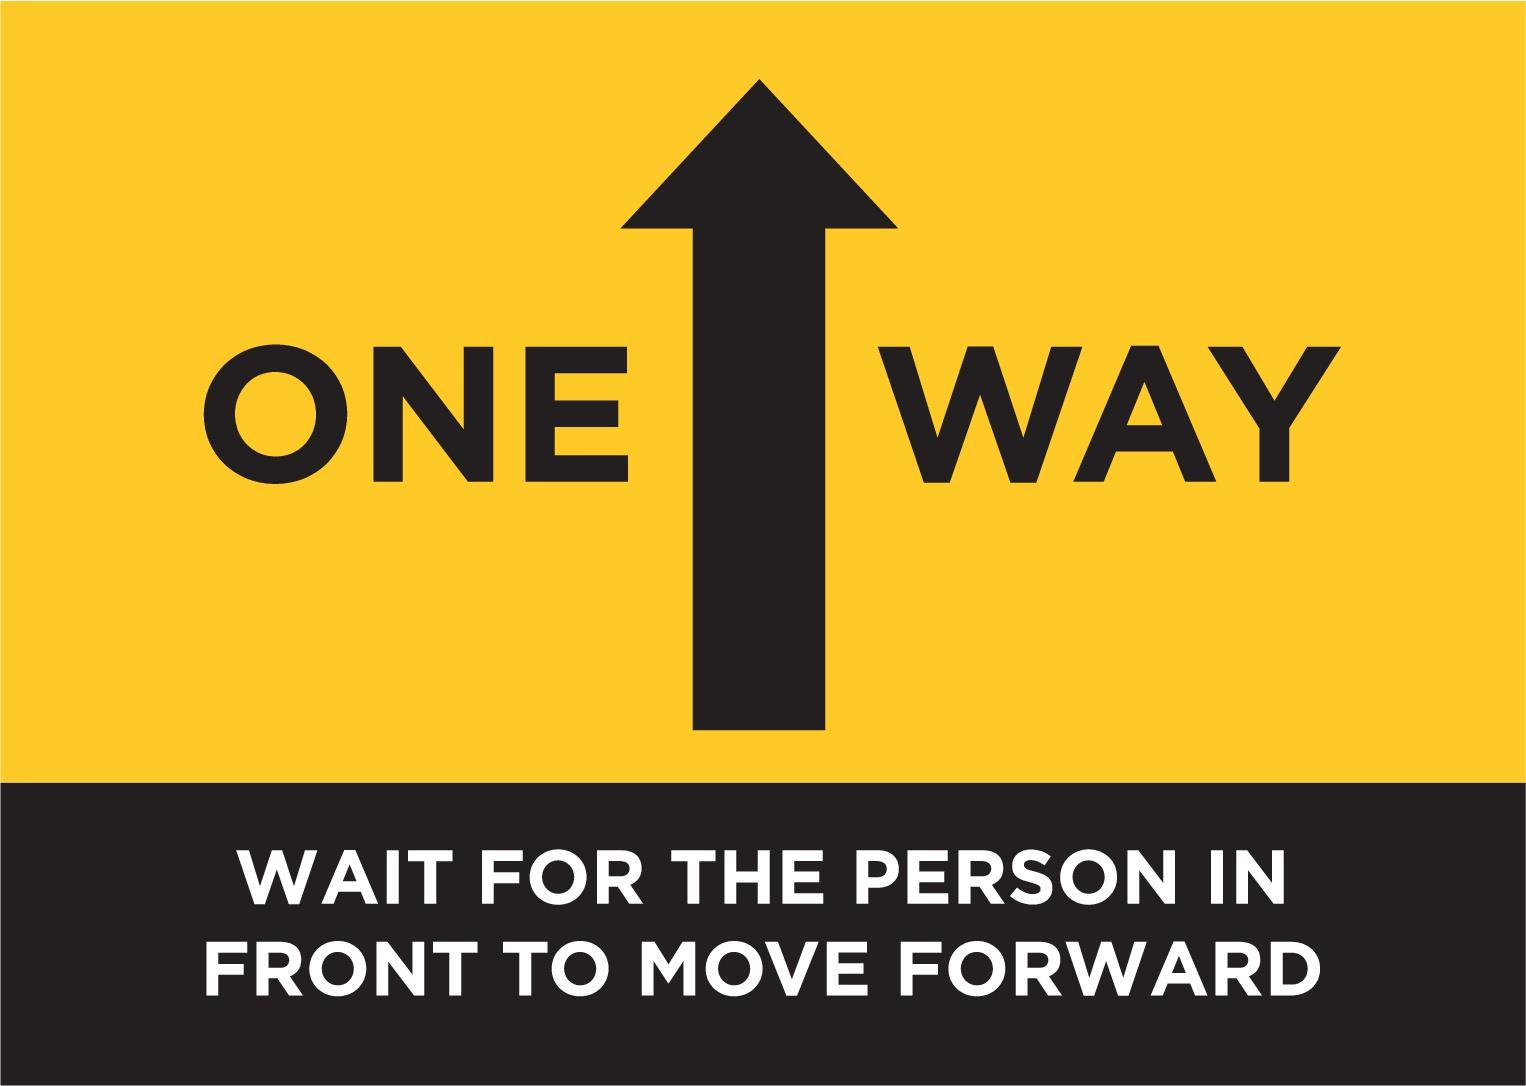 One Way Shopping System Flow POSTER SIGN NOTICE GUIDANCE Social Distancing Info